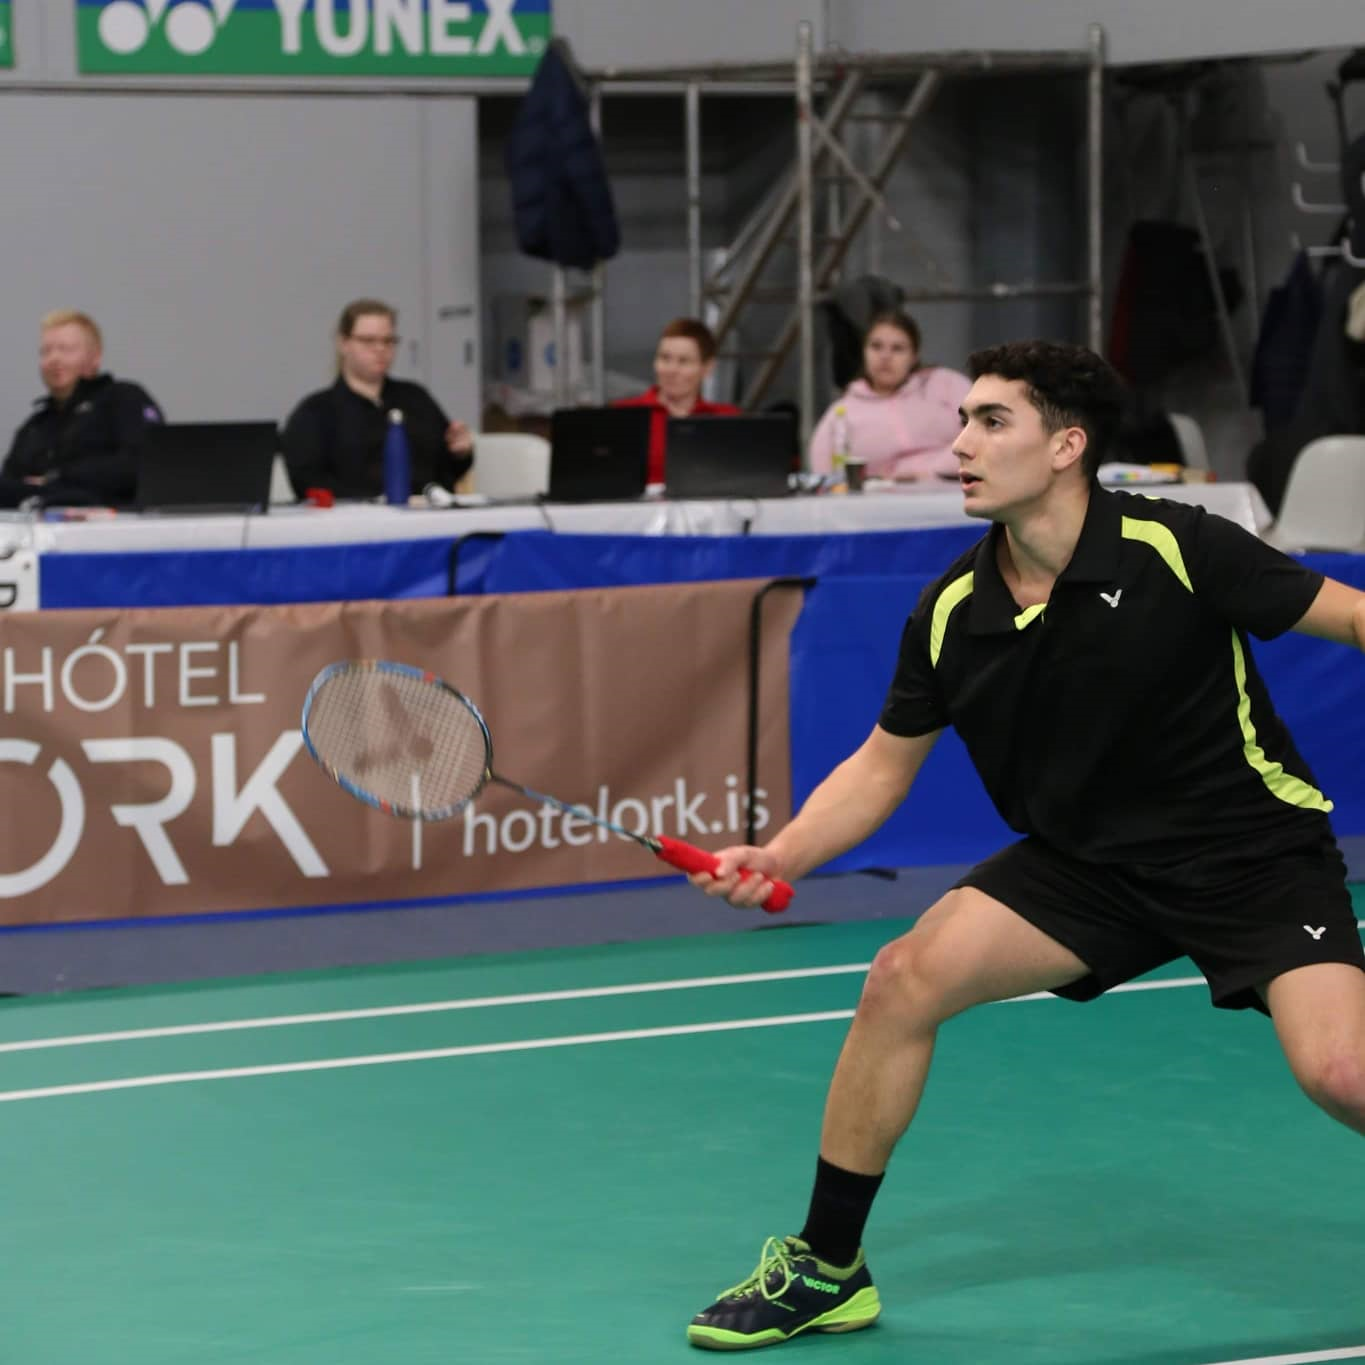 First badminton player to represent Malta at the Olympic Games